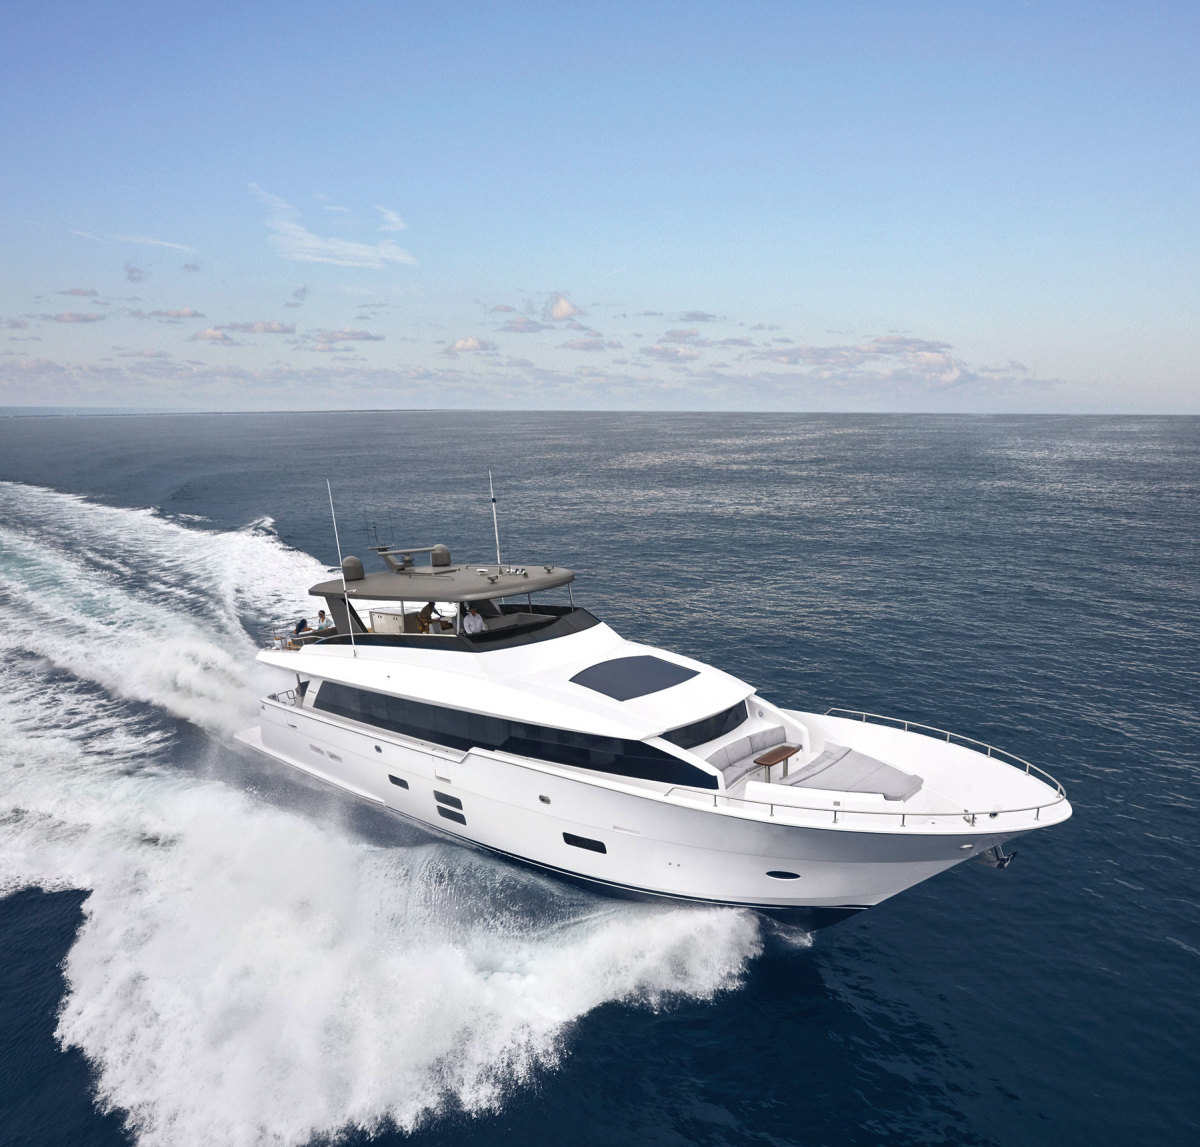 The M90 Panacera, the pride of the Hatteras fleet, makes its official world debut at the Fort Lauderdale show in November.